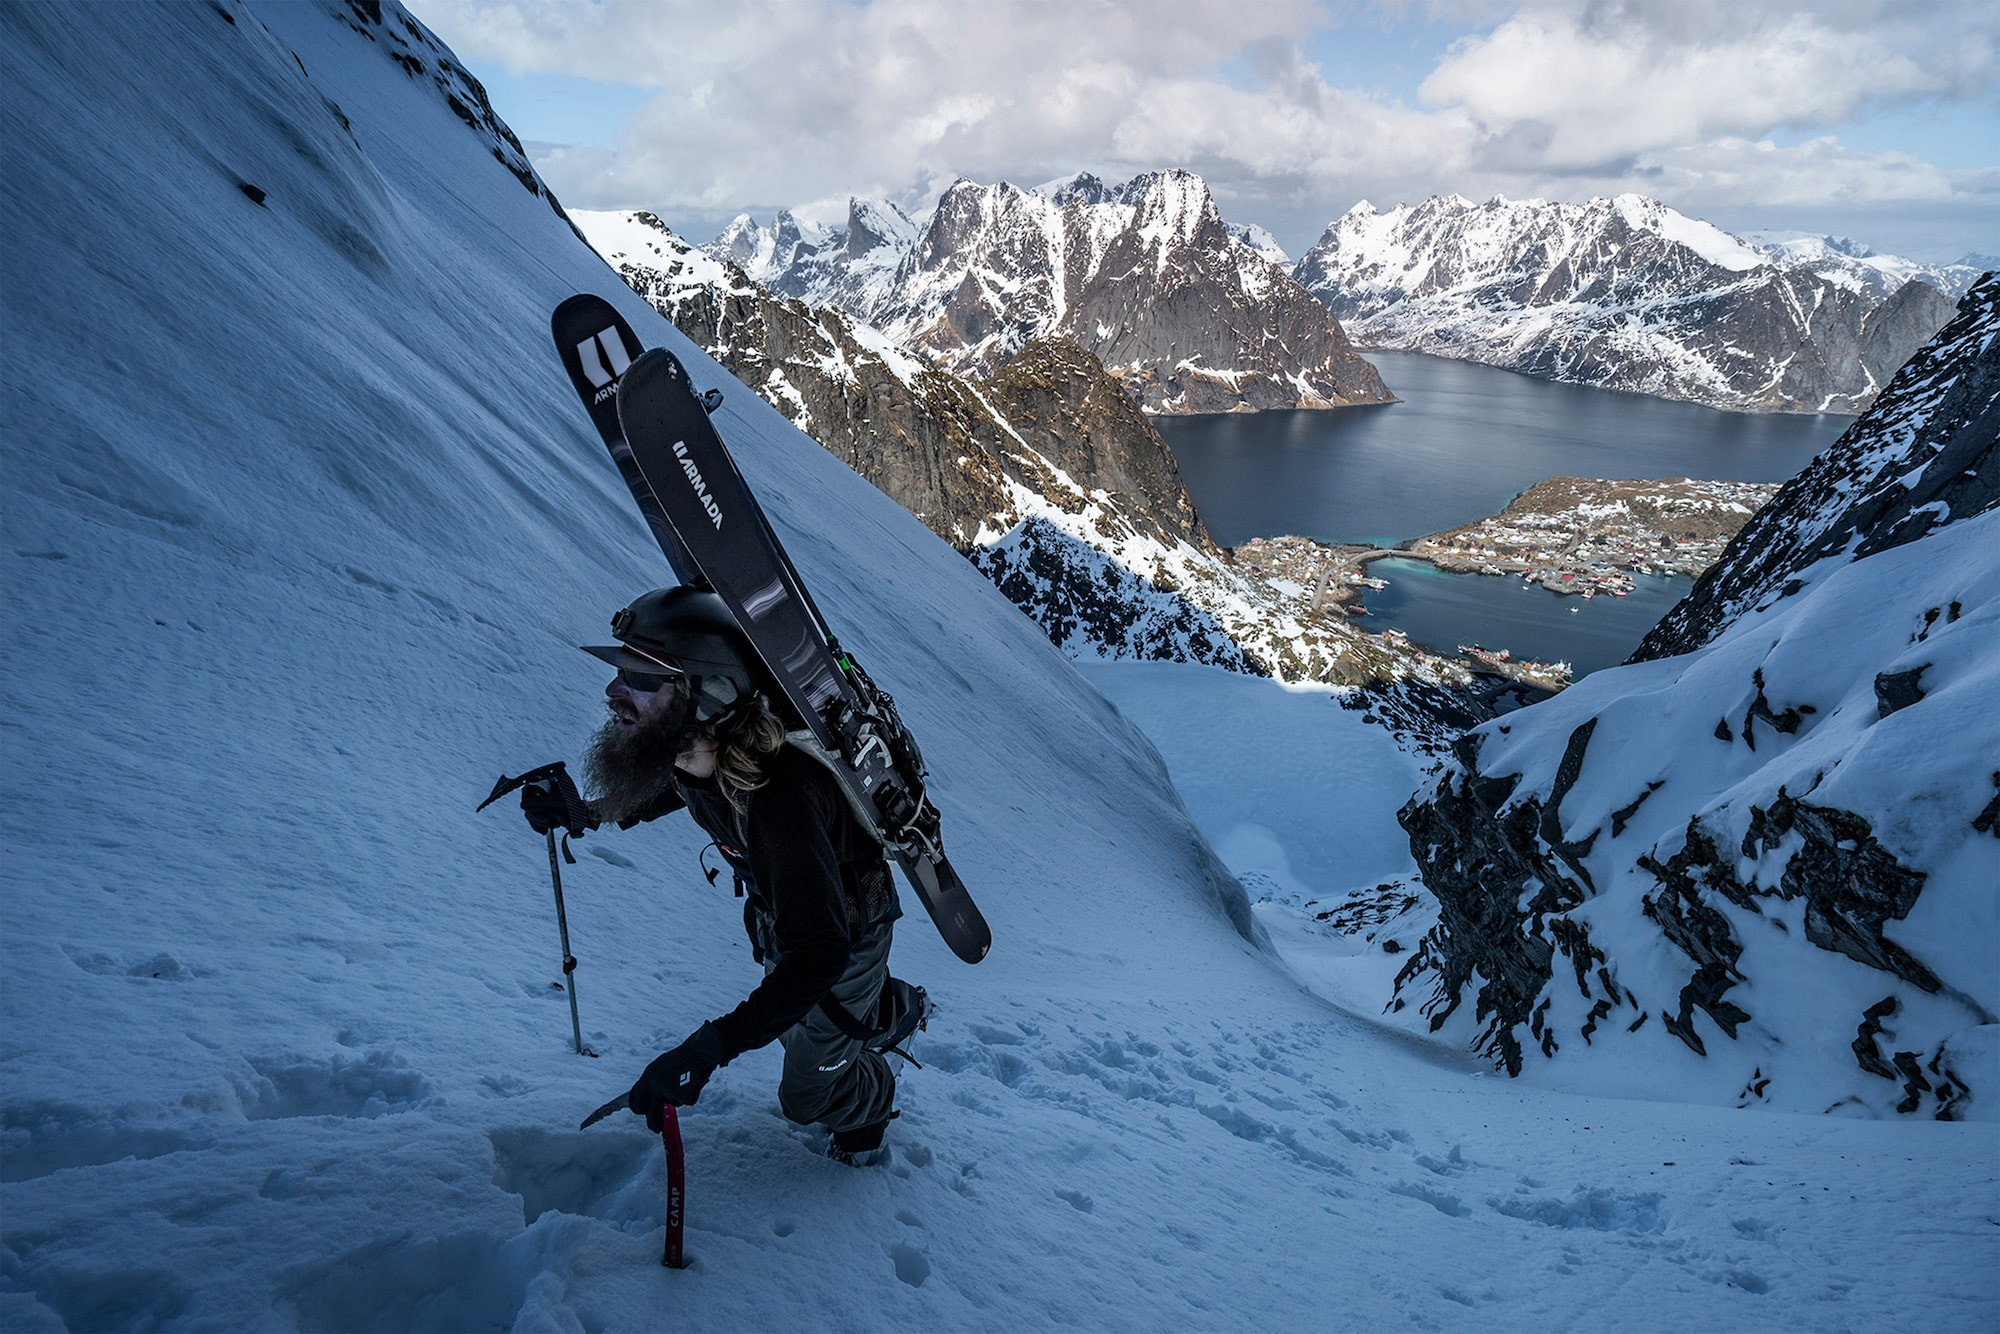 daniel ronnback sony alpha 9 a skier makes his way up a steep snow covered mountainside